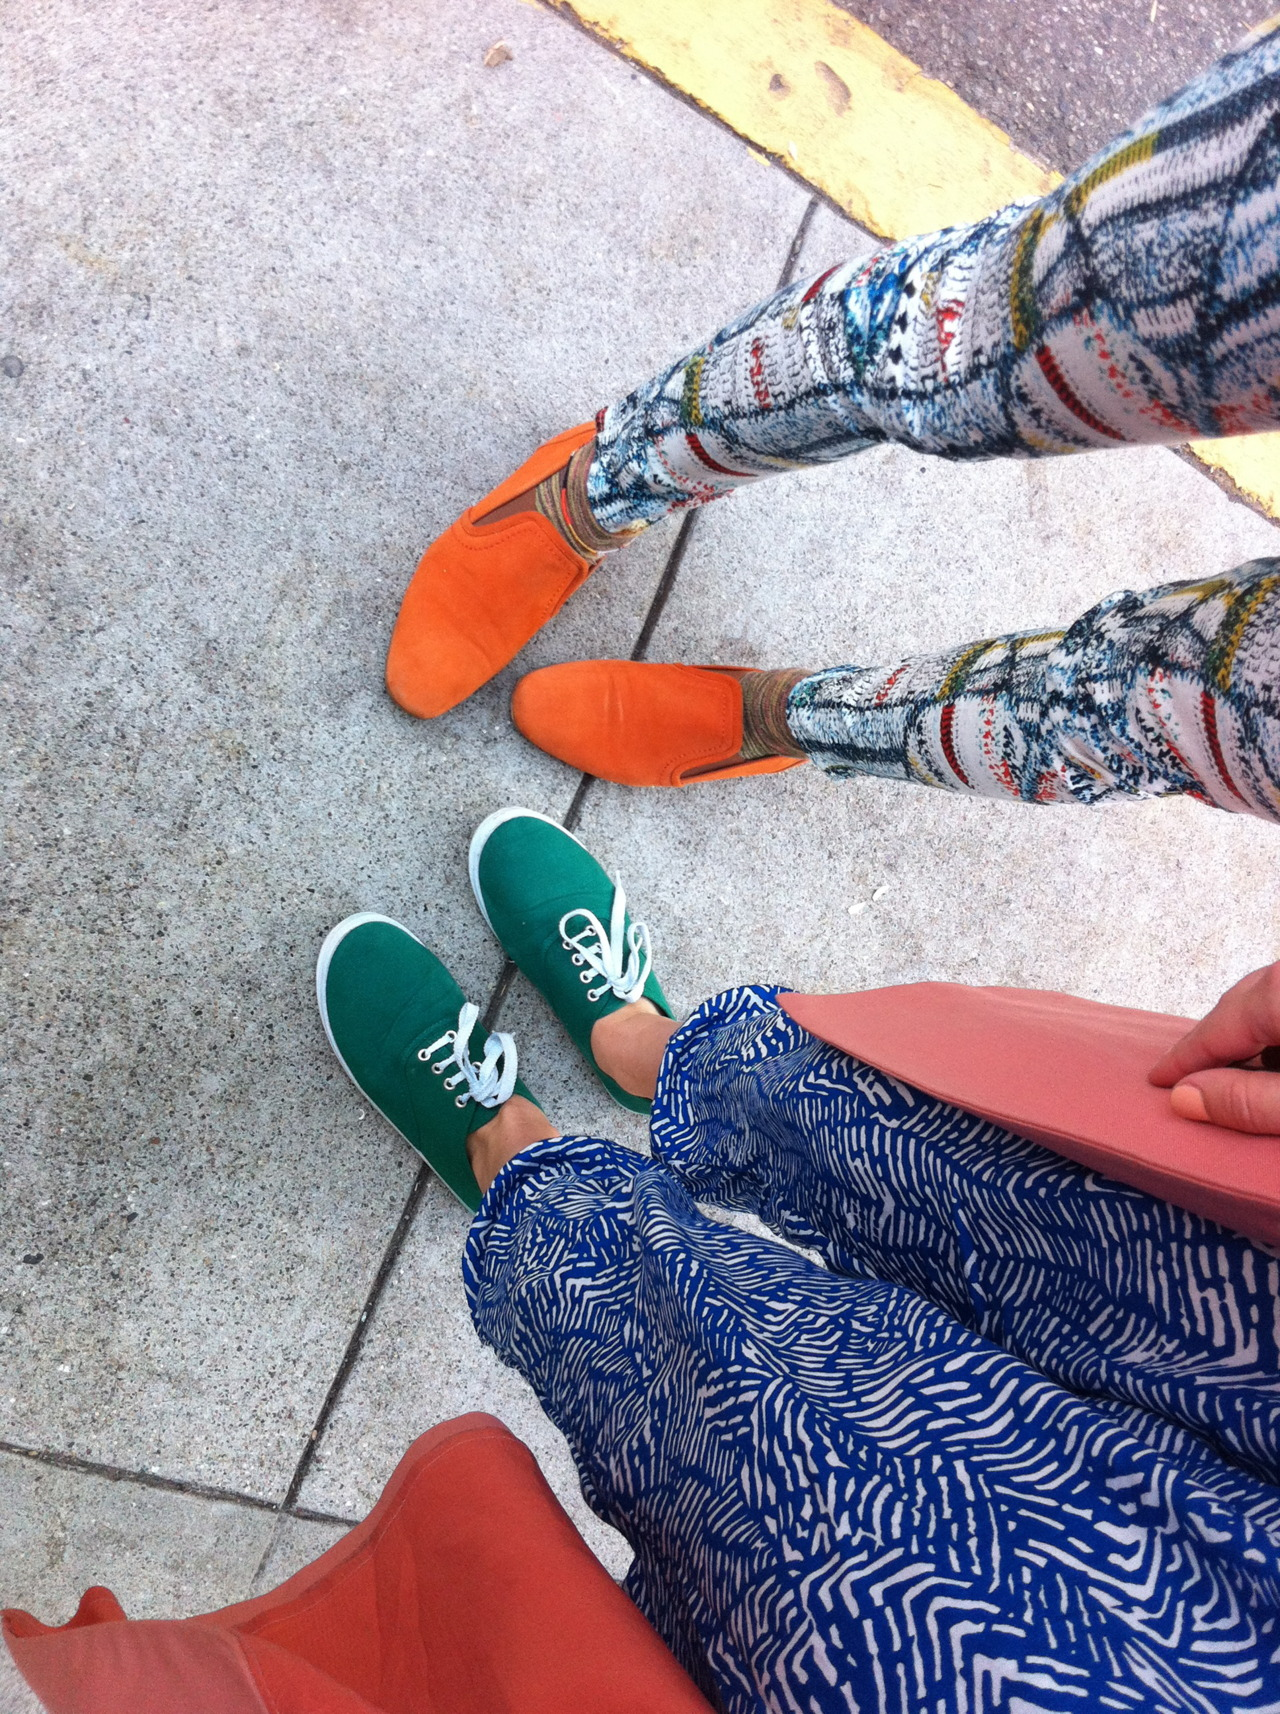 My friends in printed pants and bright shoes.